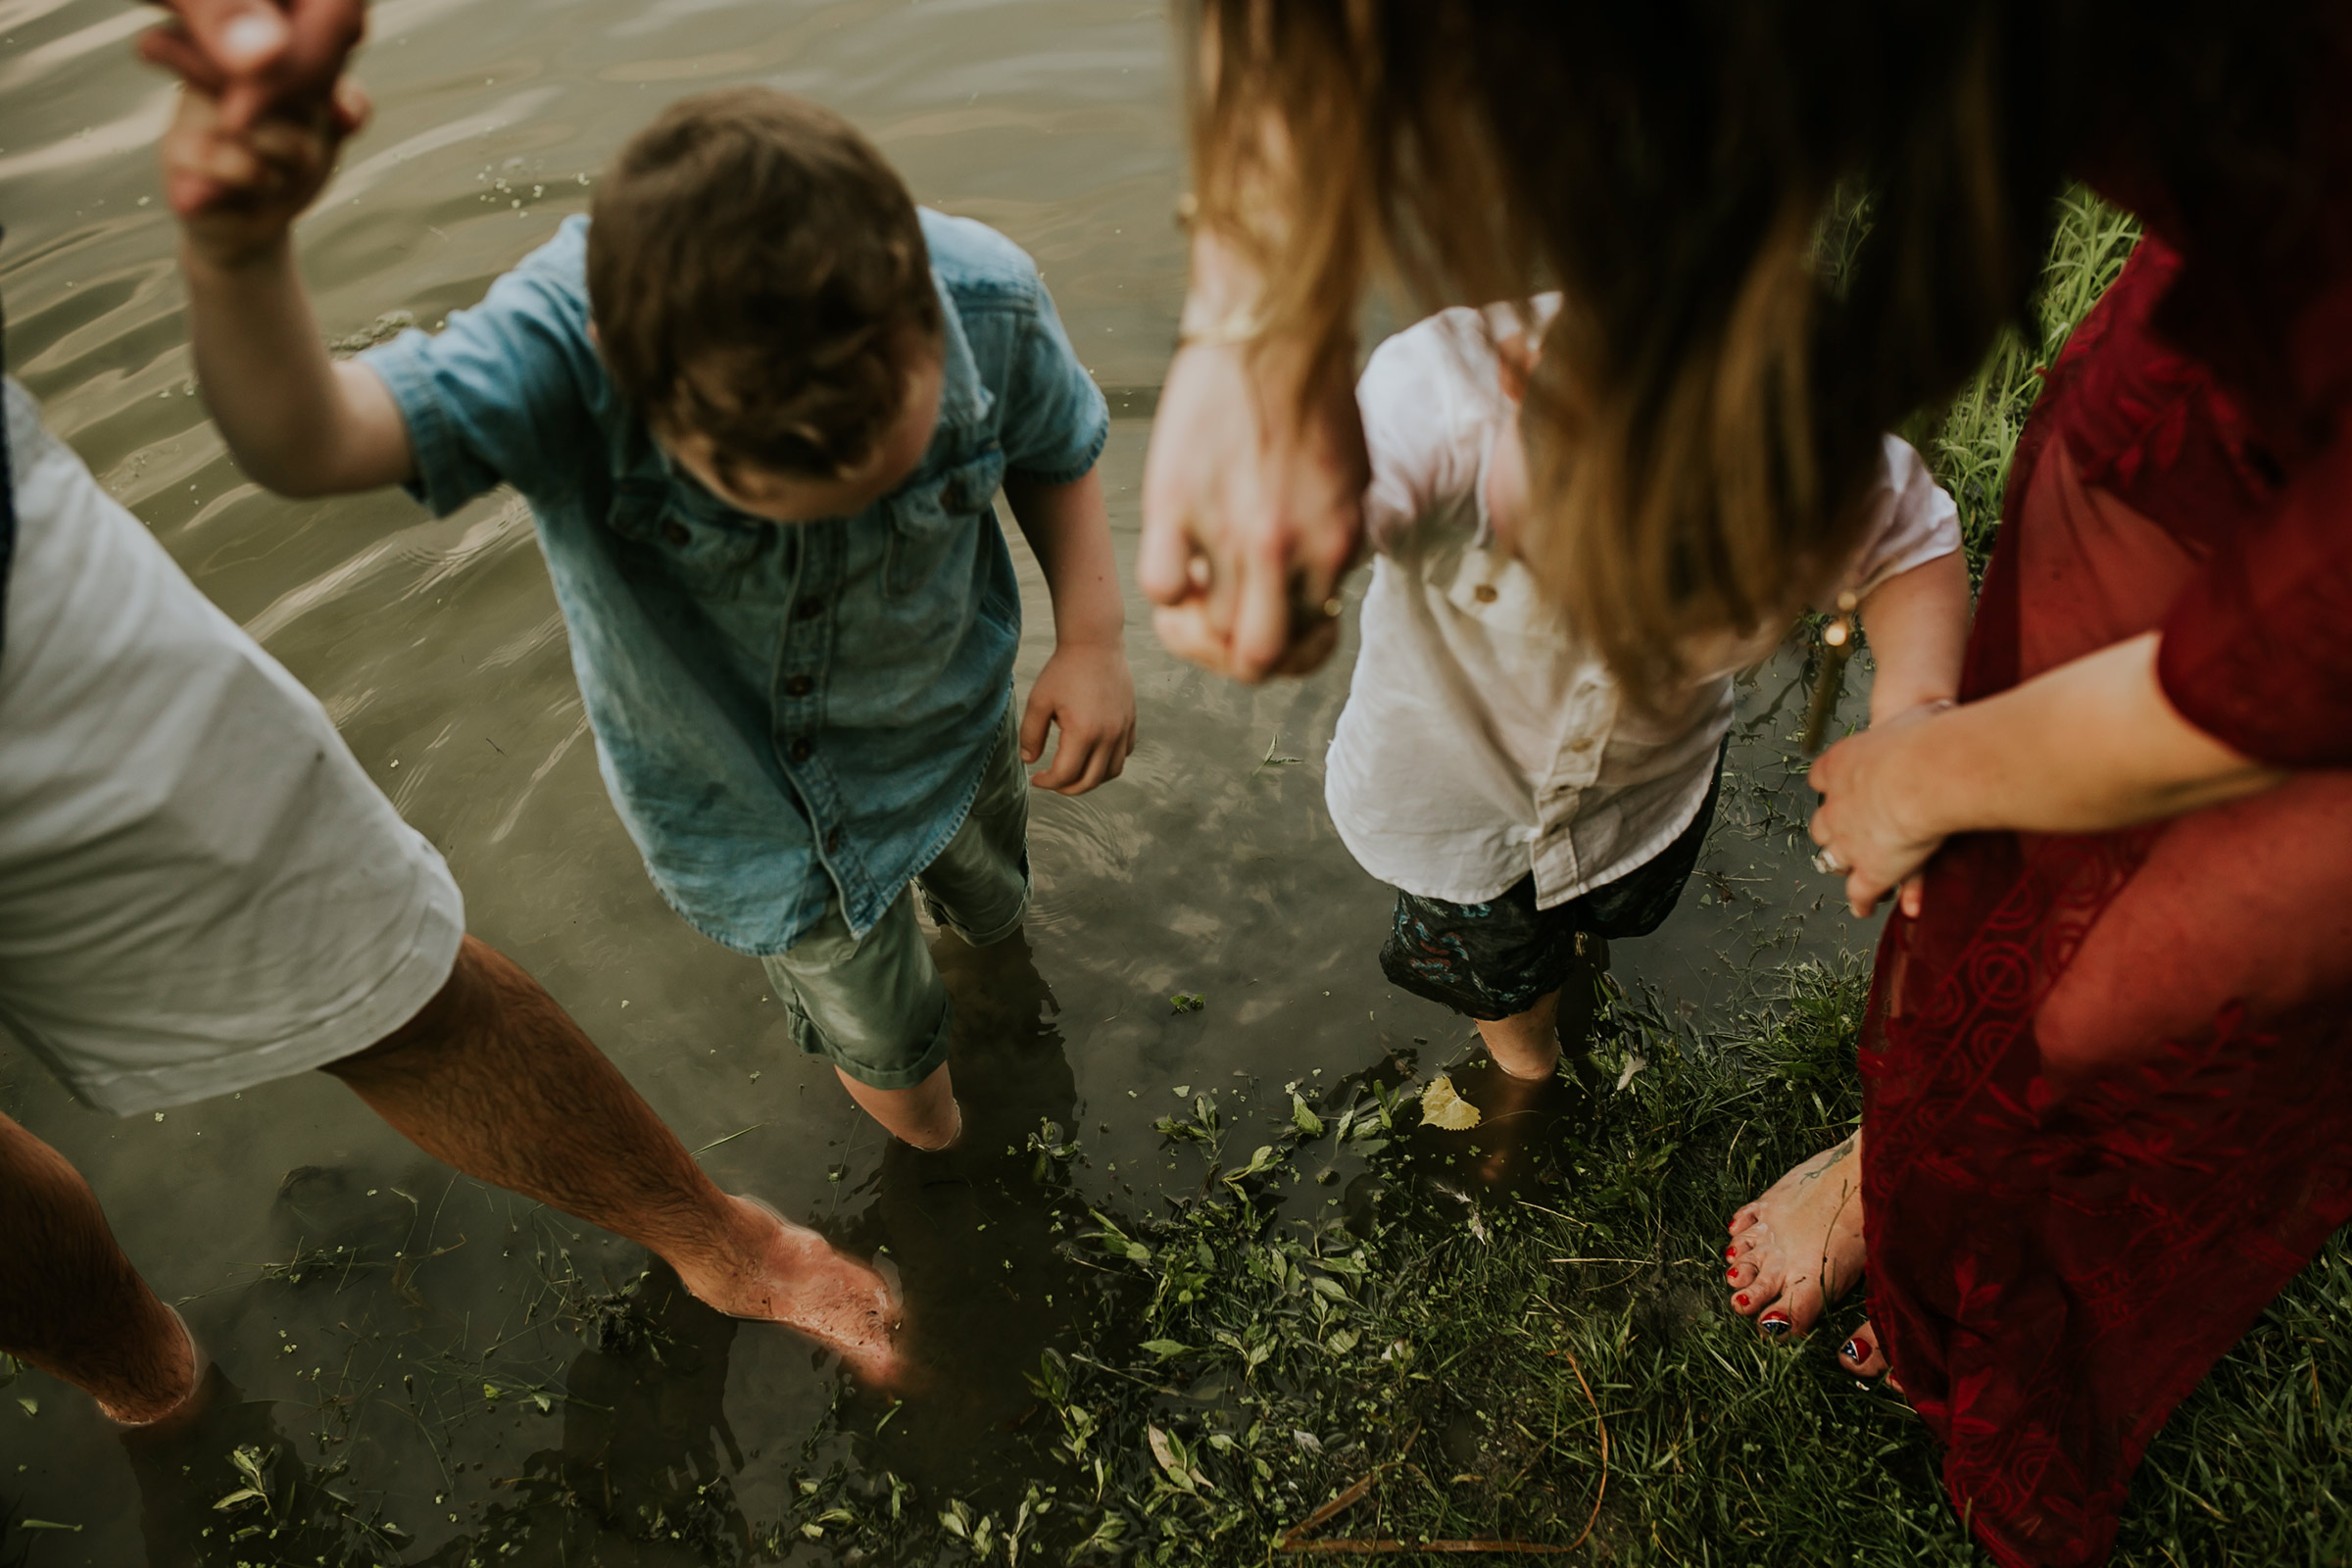 flynn-family-standing-in-lake-jester-park-iowa-raelyn-ramey-photography.jpg